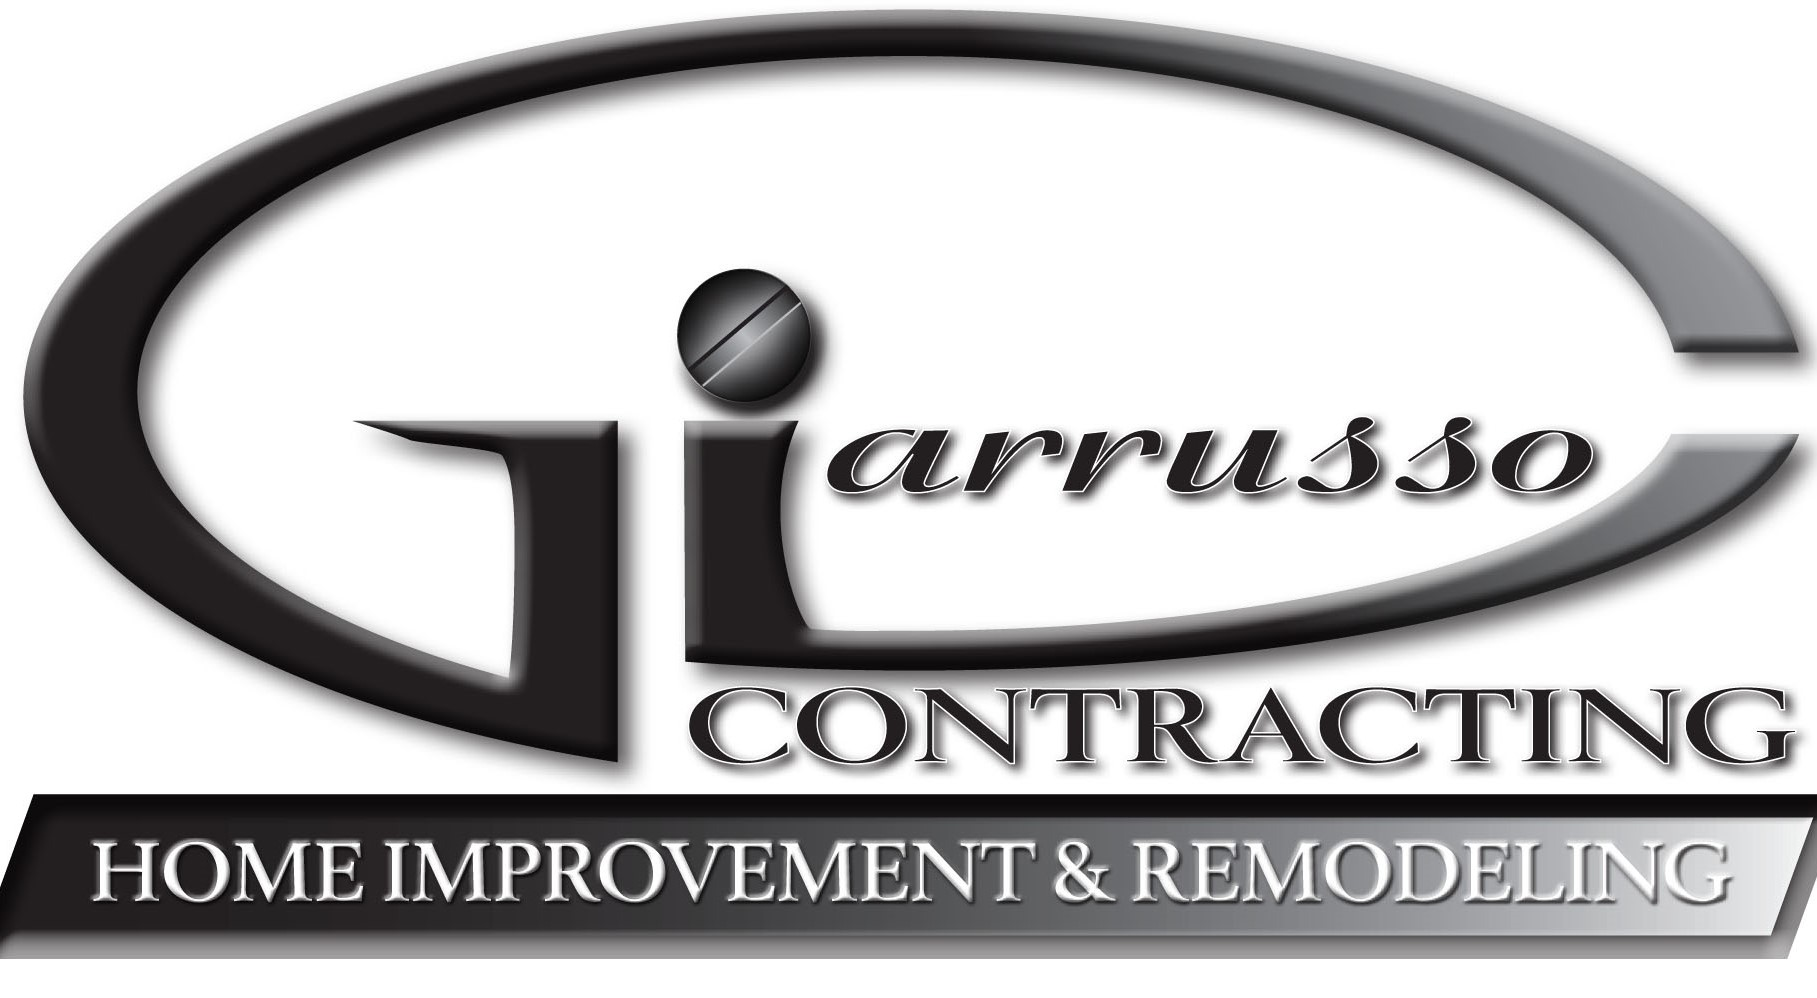 Giarrusso Contracting, LLC